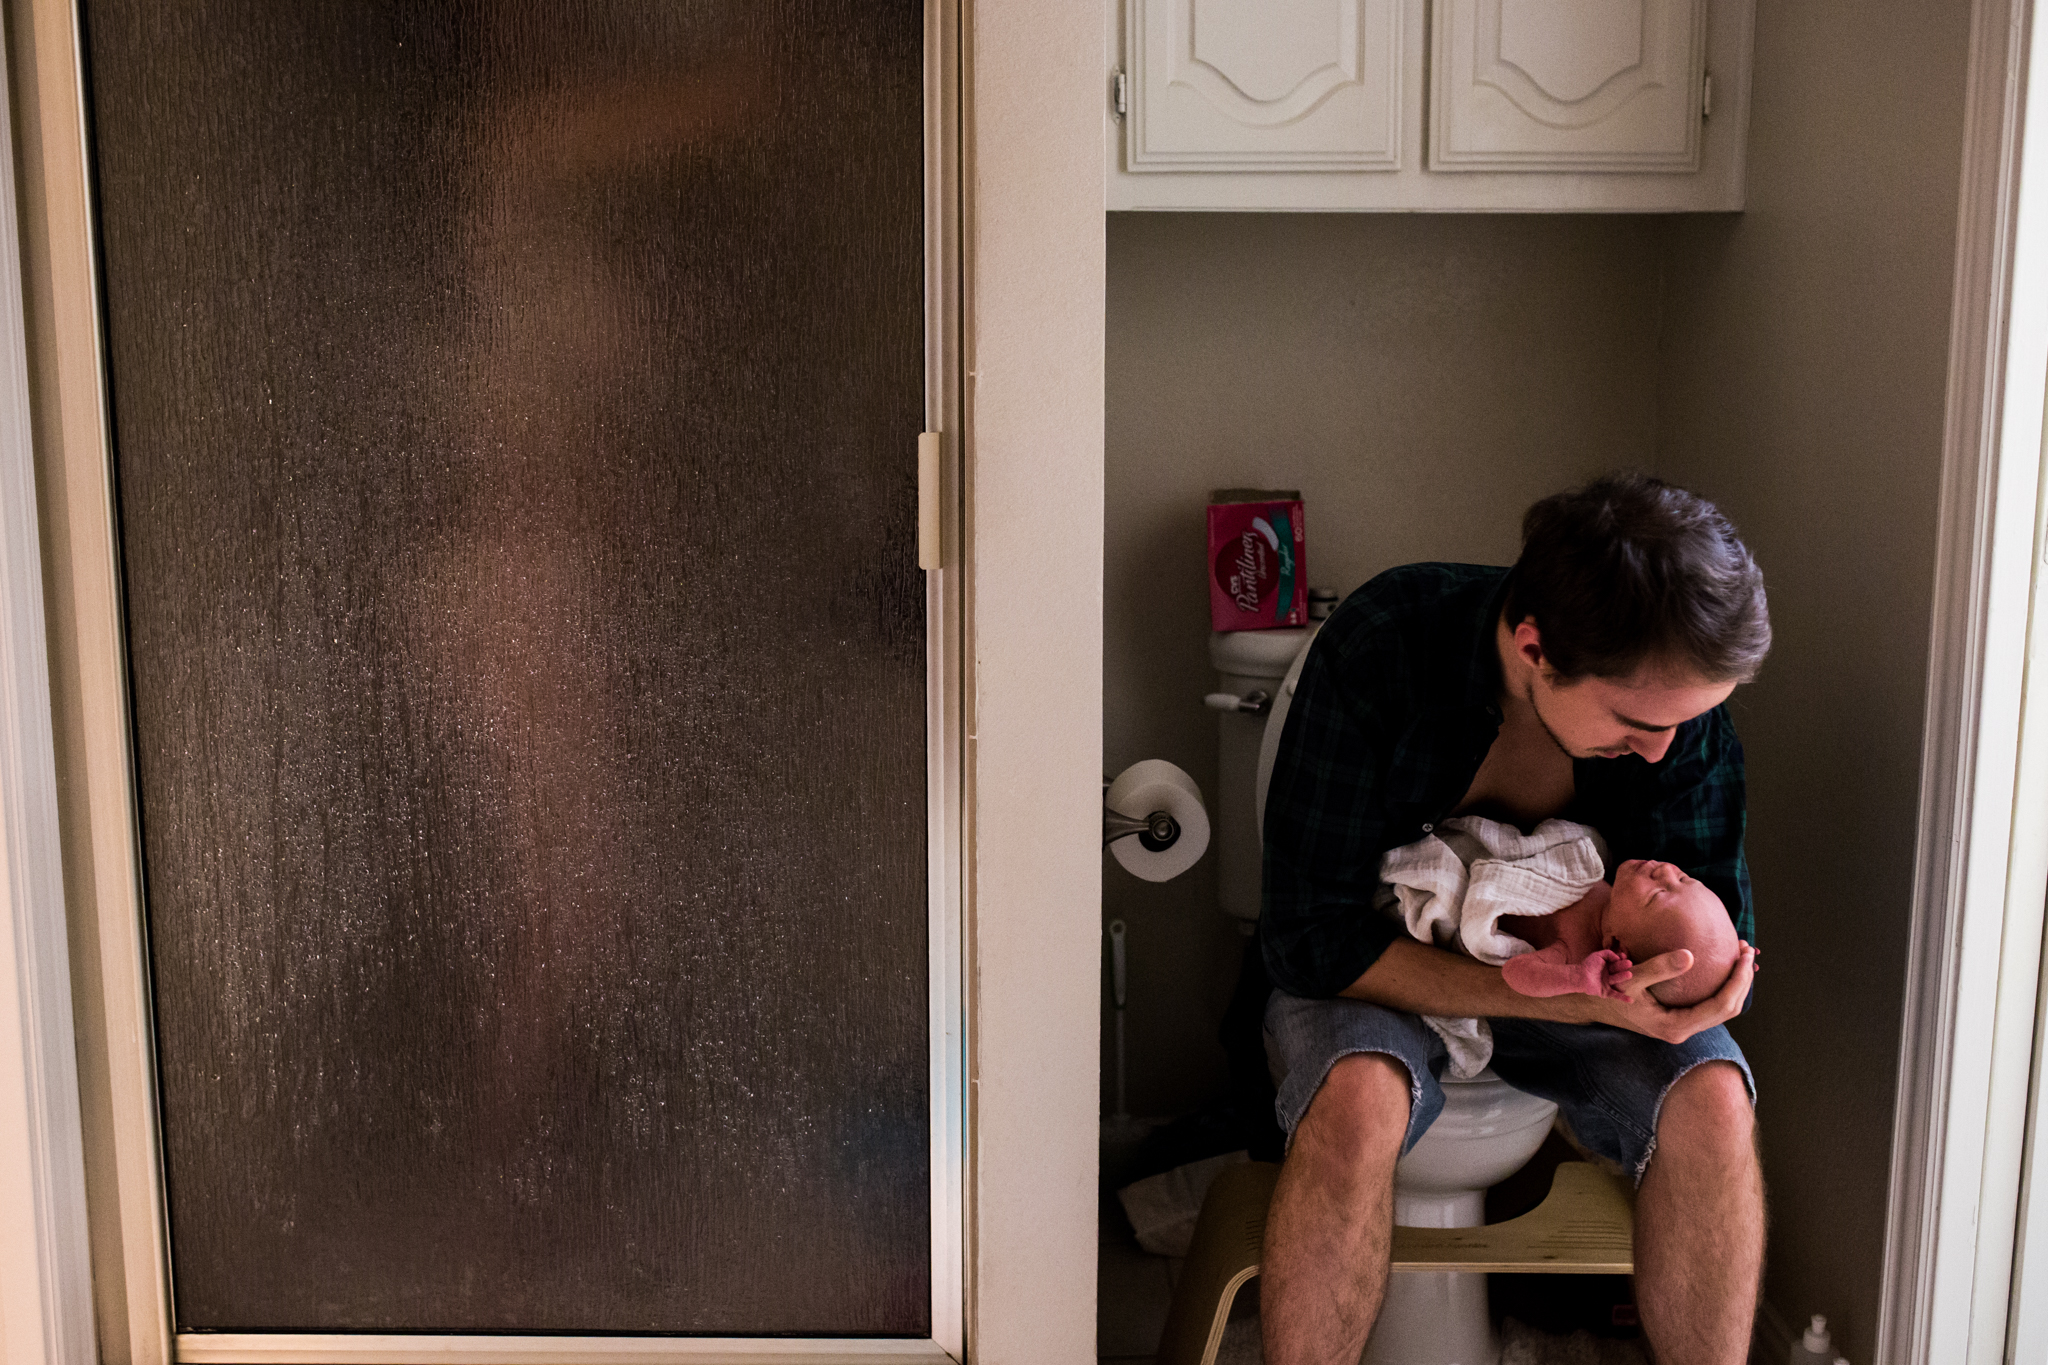 Lawren Rose Photography, a dallas documentary family photographer, snaps an intimate photo of a new mom taking a shower while dad sits nearby on the toilet holding their 3 day old son in an in-home session in farmers branch, texas